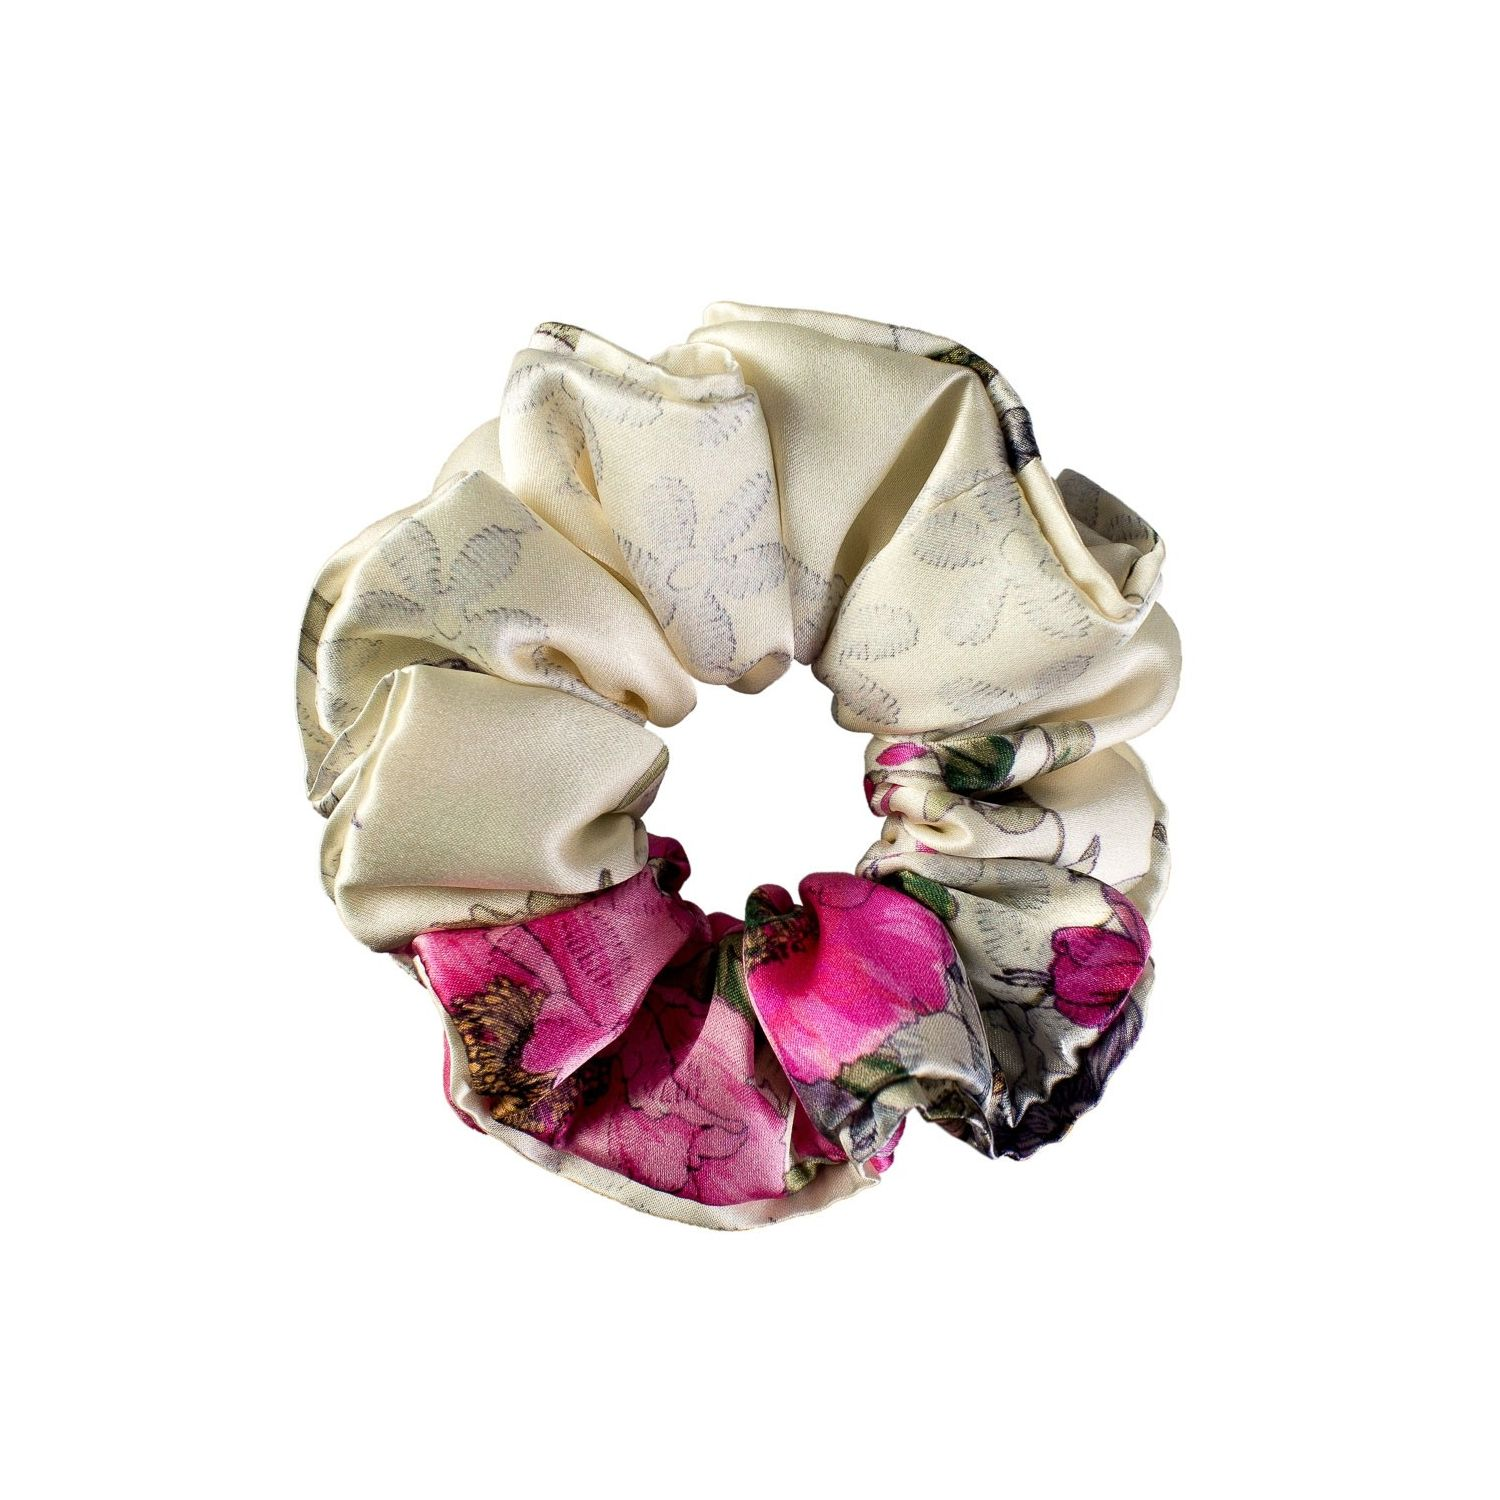 Silk Scrunchies For Natural Hair